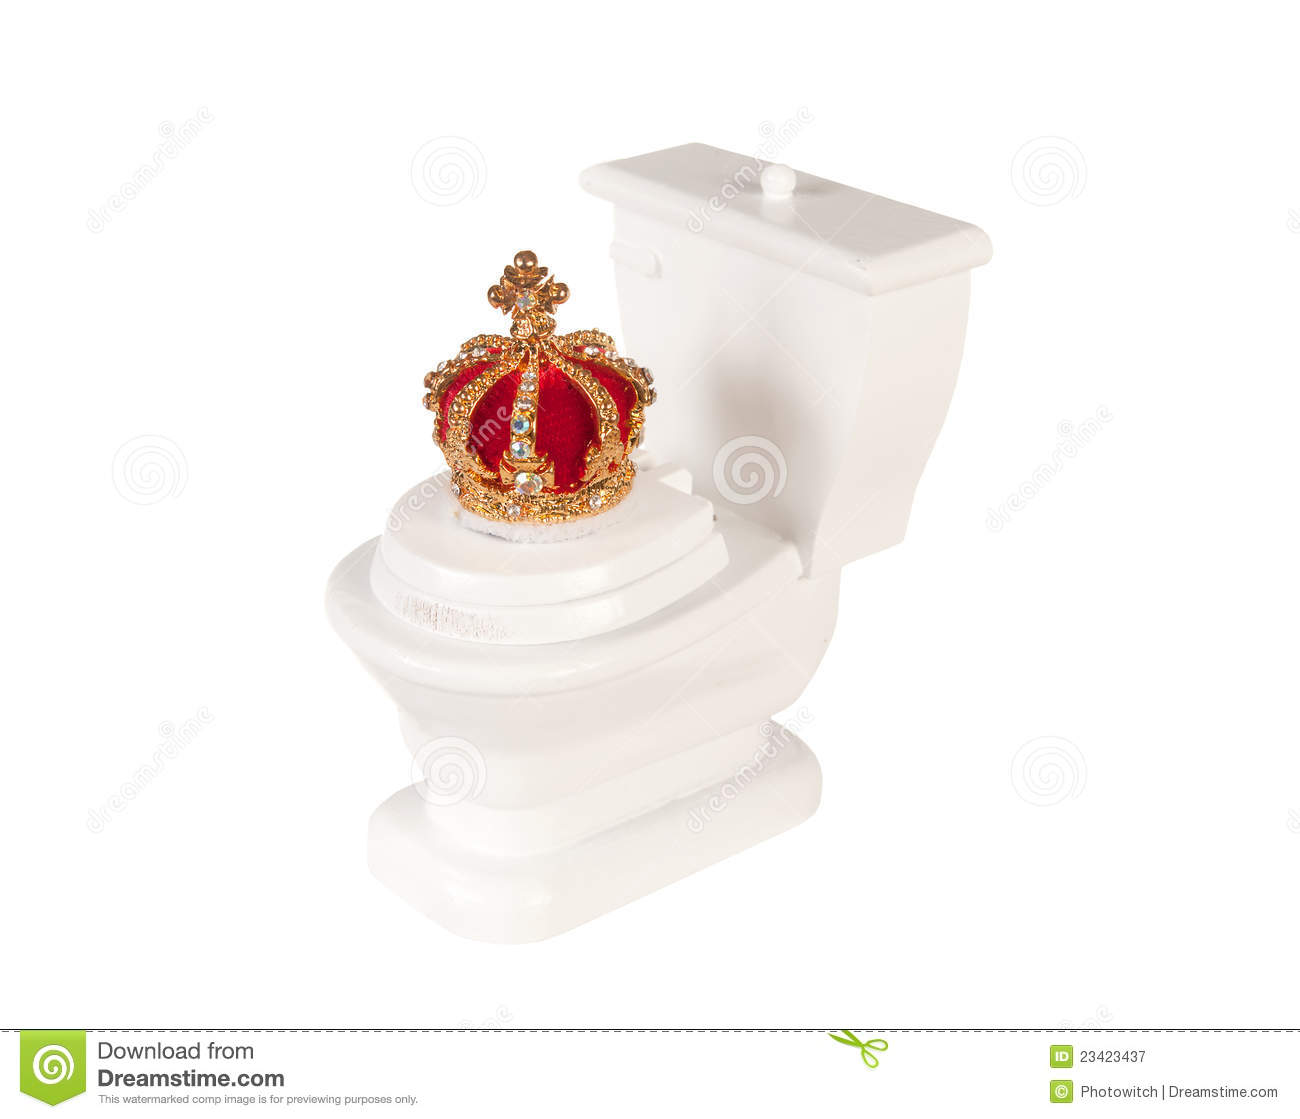 royal toilet royalty free stock photography image 23423437 free crown clipart for cricut free crown clipart for cricut